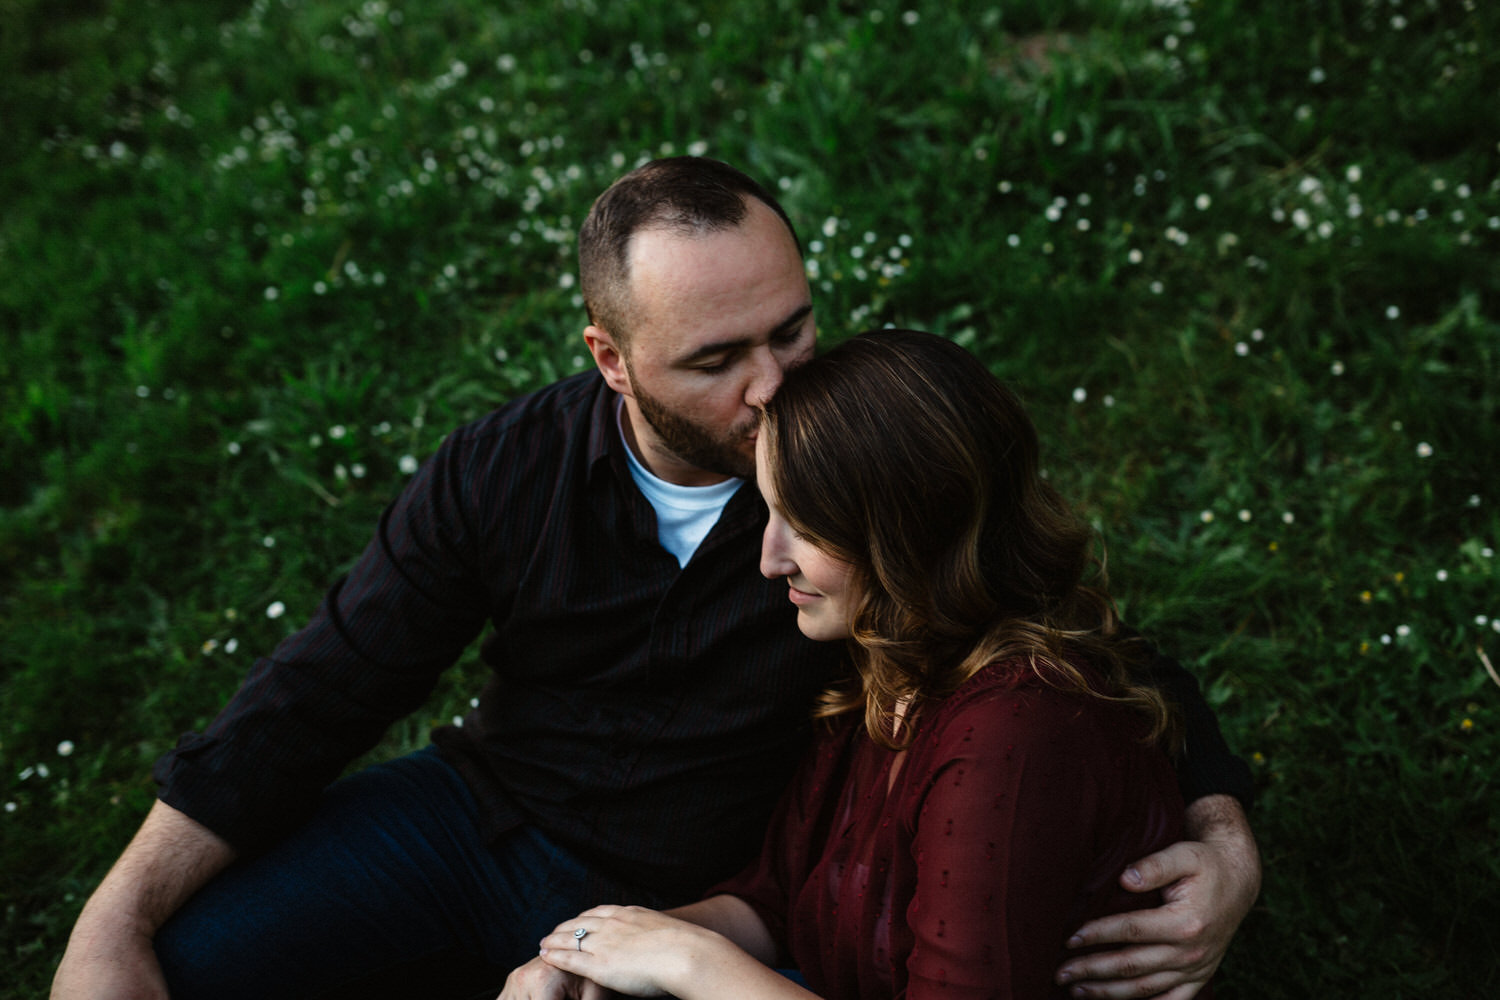 Hoyt Arboretum Engagement session photography Portland oregon 0025.JPG